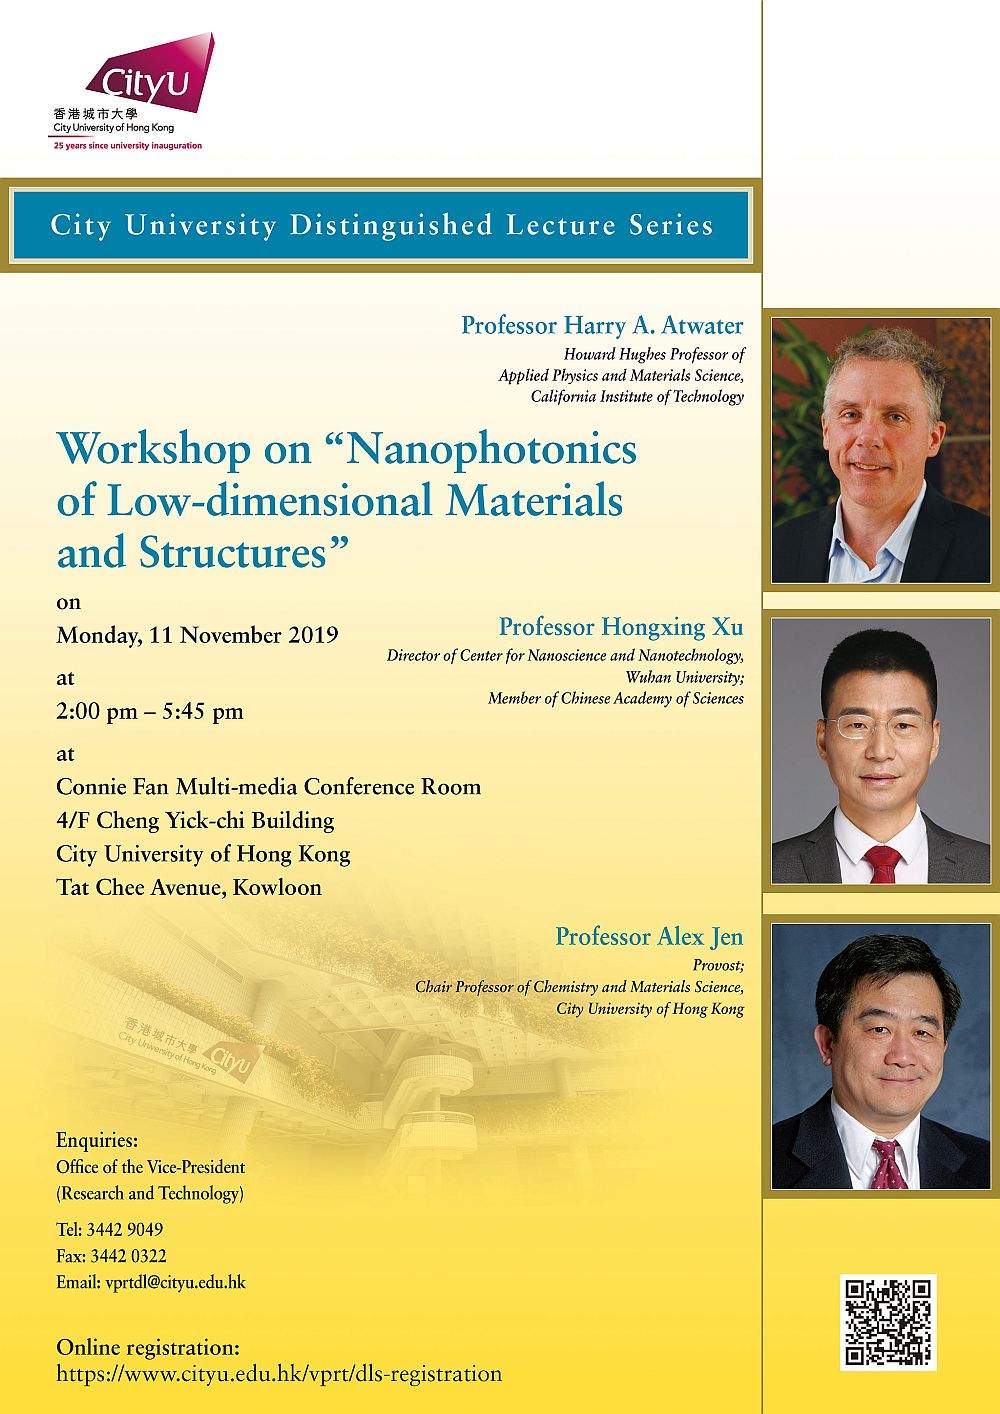 """Title: Workshop on """"Nanophotonics of Low-dimensional Materials and Structures"""" Date: 11 Nov 2019 (Mon) Time: 2:00 pm - 5:45 pm (tea break: 4:00pm - 4:20pm) Speaker: Prof Harry Atwater; Prof Hongxing Xu; Prof Alex Jen Venue: Connie Fan Multi-media Conference Room, 4/F Cheng Yick-chi Building, CityU"""